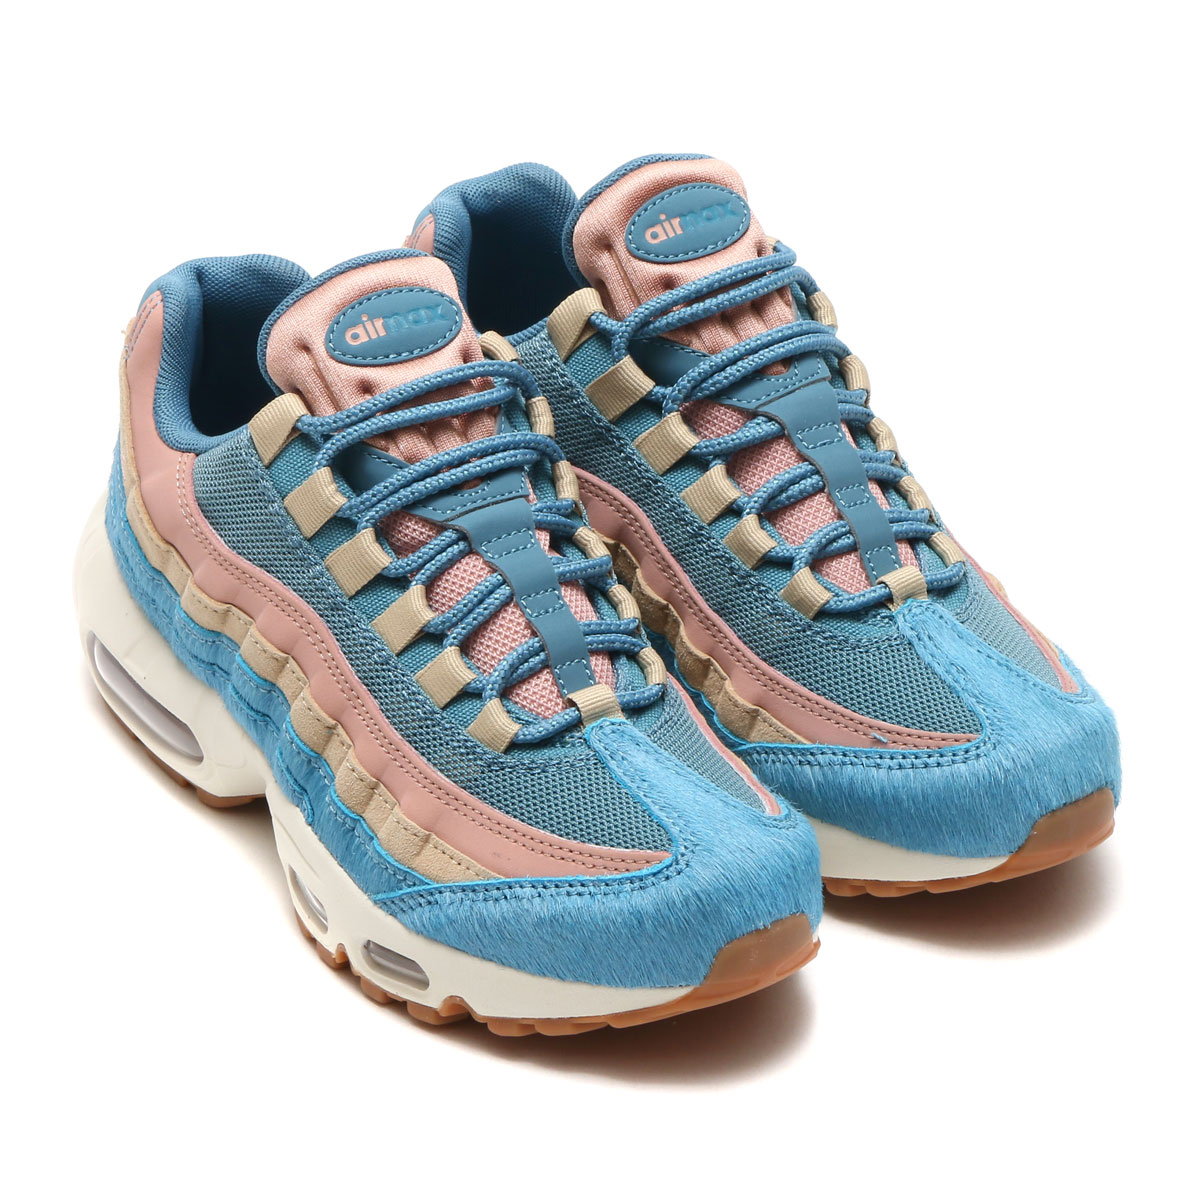 Anyone will want to repeat various colors there if I see a lamellar design  of Air Max 95. With the most recent version a213f6593